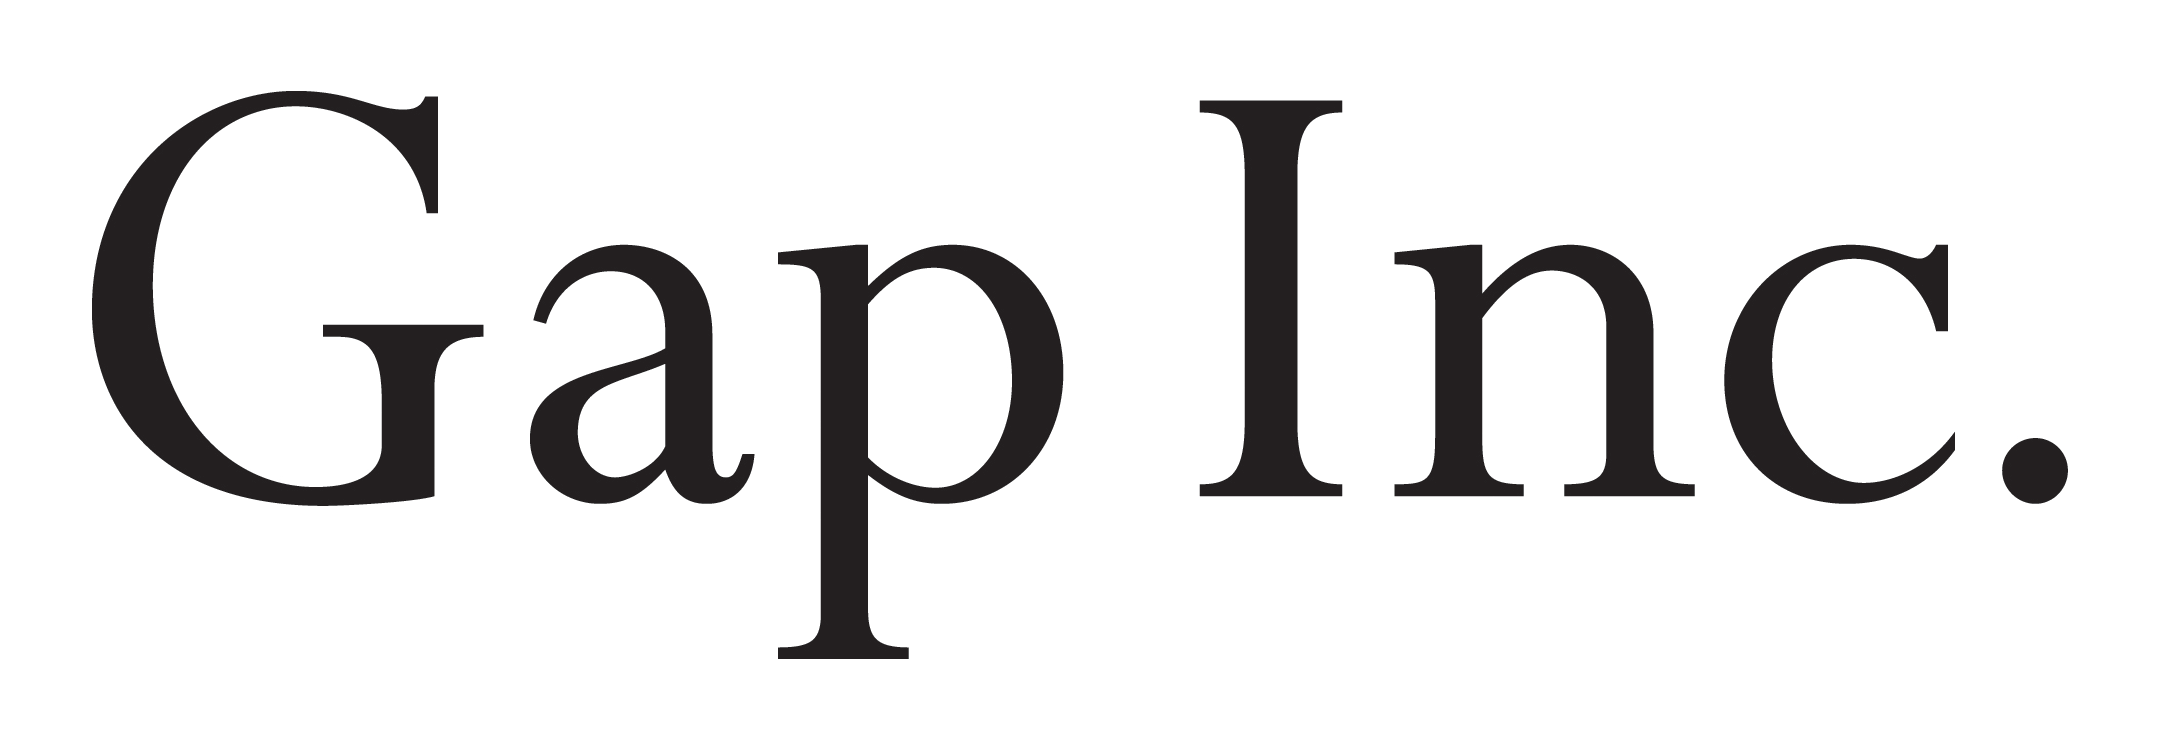 Download Gap Inc Logo PNG Image for Free.